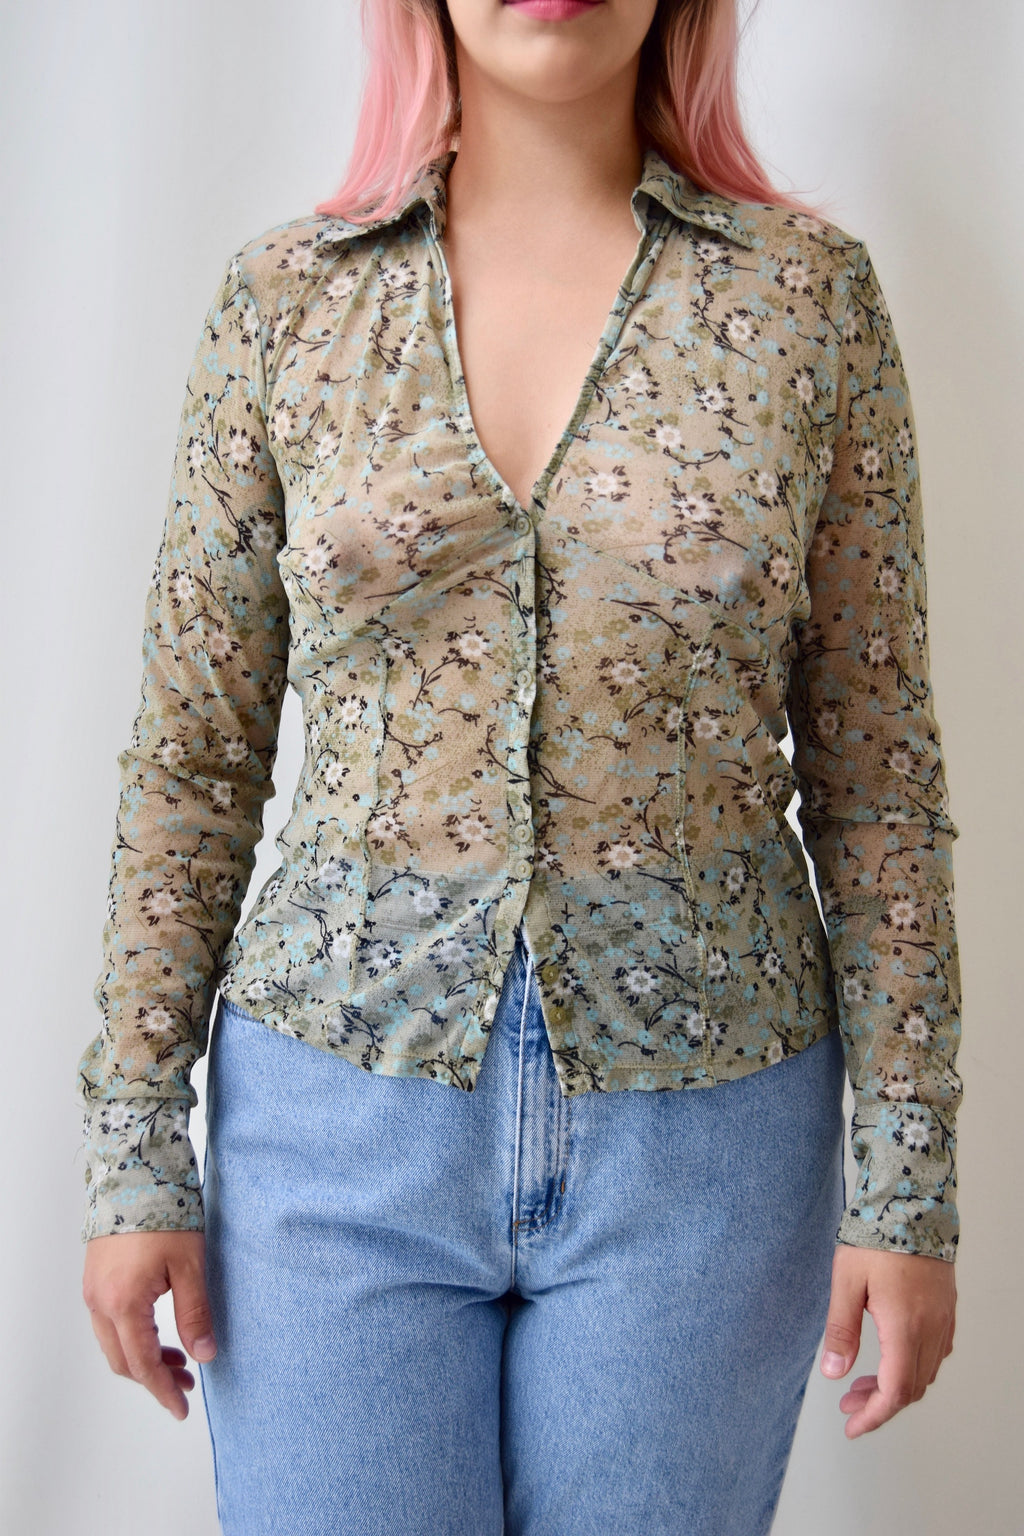 Moss Mesh Floral Top